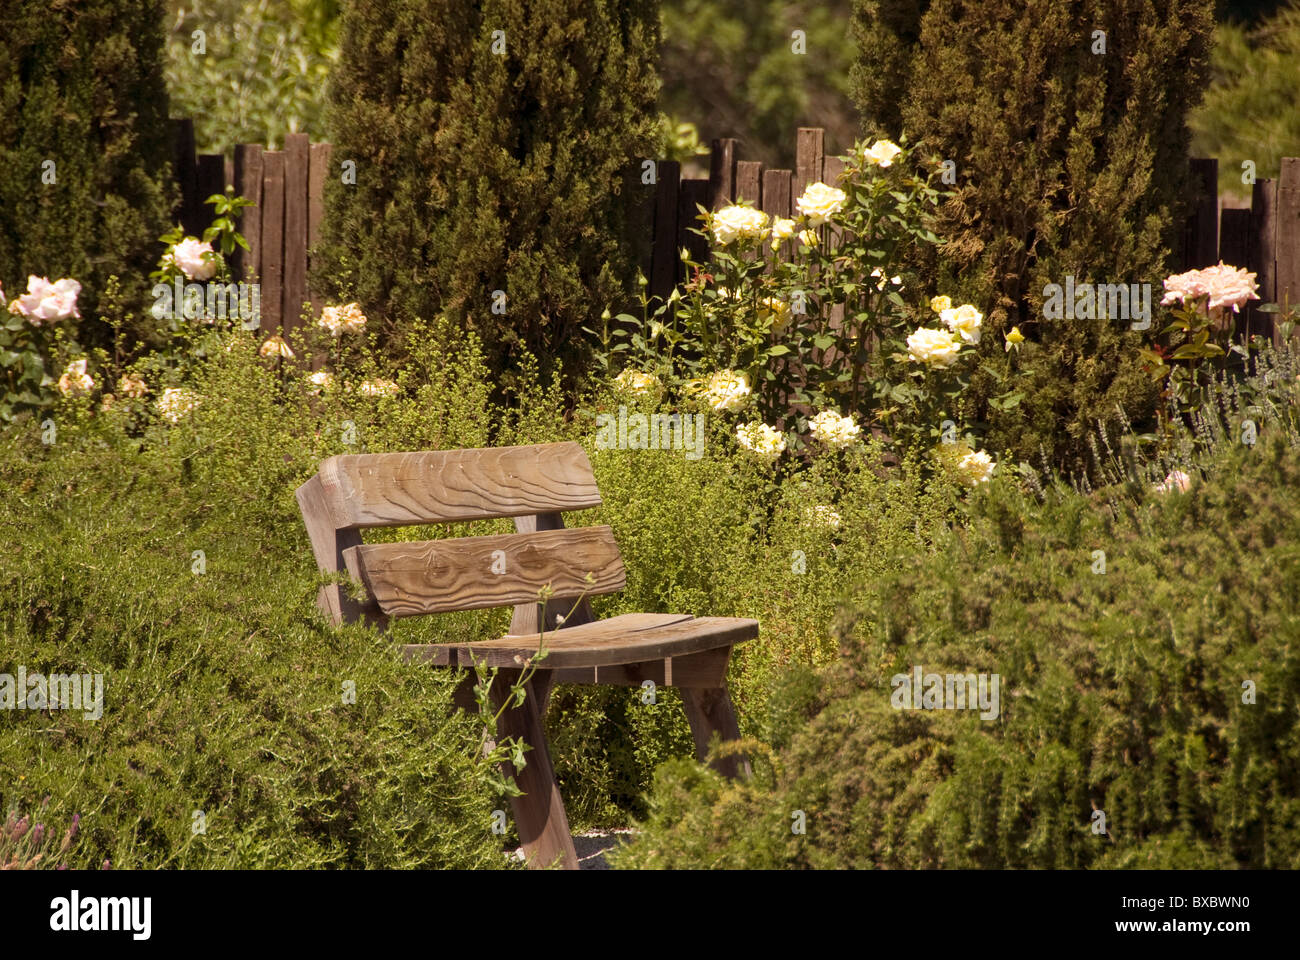 Near Healdsburg Stock Photos & Near Healdsburg Stock Images - Alamy